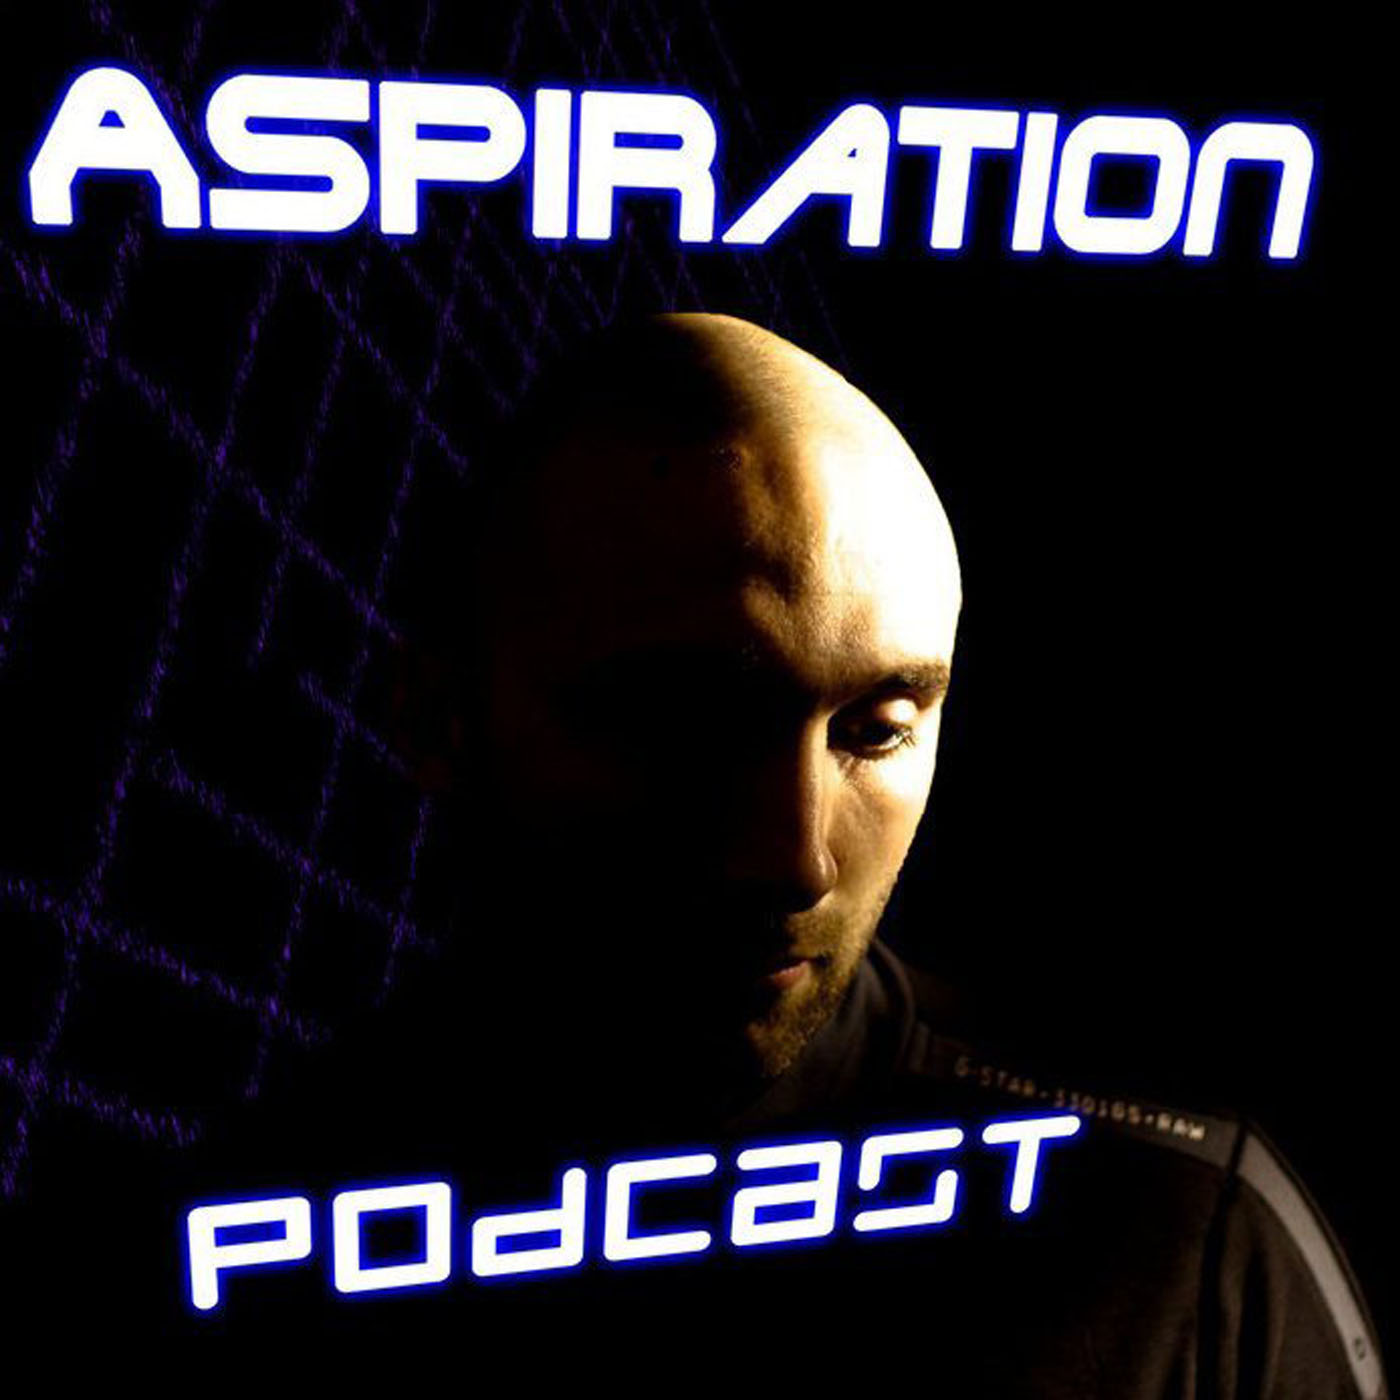 Aspiration_July_2012_Podcast.mp3